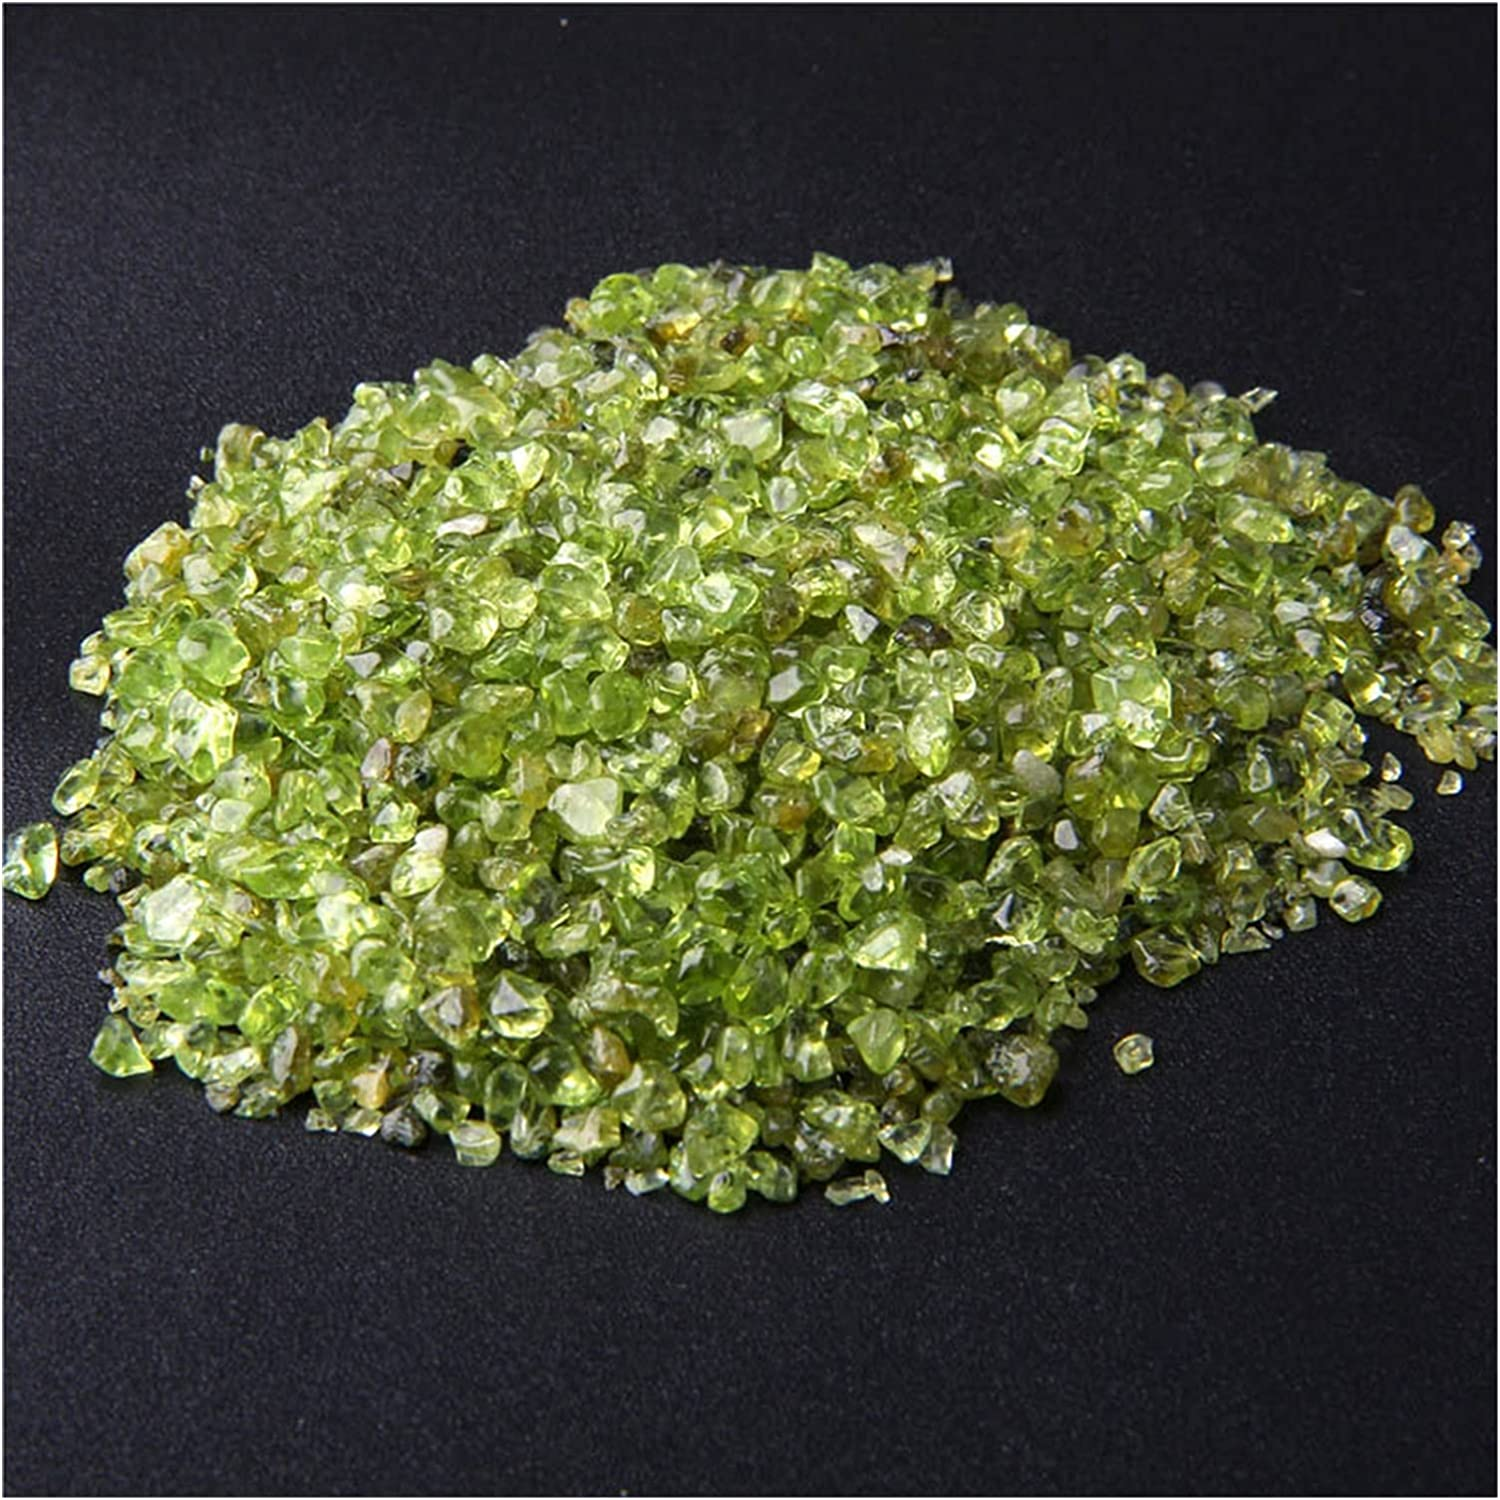 XINGTAO Max 64% OFF Rough Stone Undrilled Natural Olivine Chip Peridot San Diego Mall